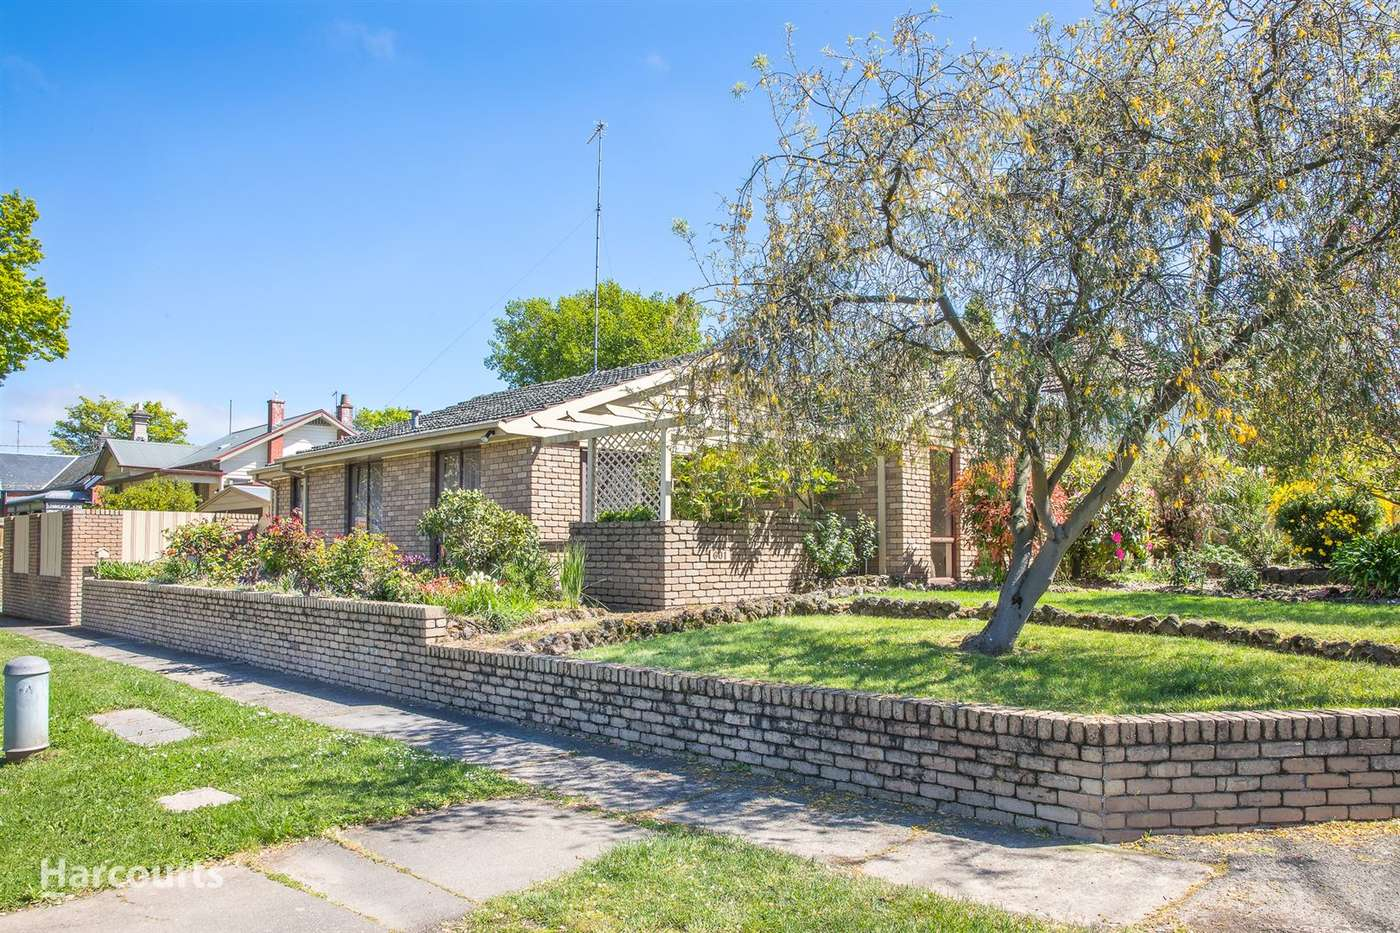 Main view of Homely house listing, 601 Lydiard Street North, Soldiers Hill, VIC 3350